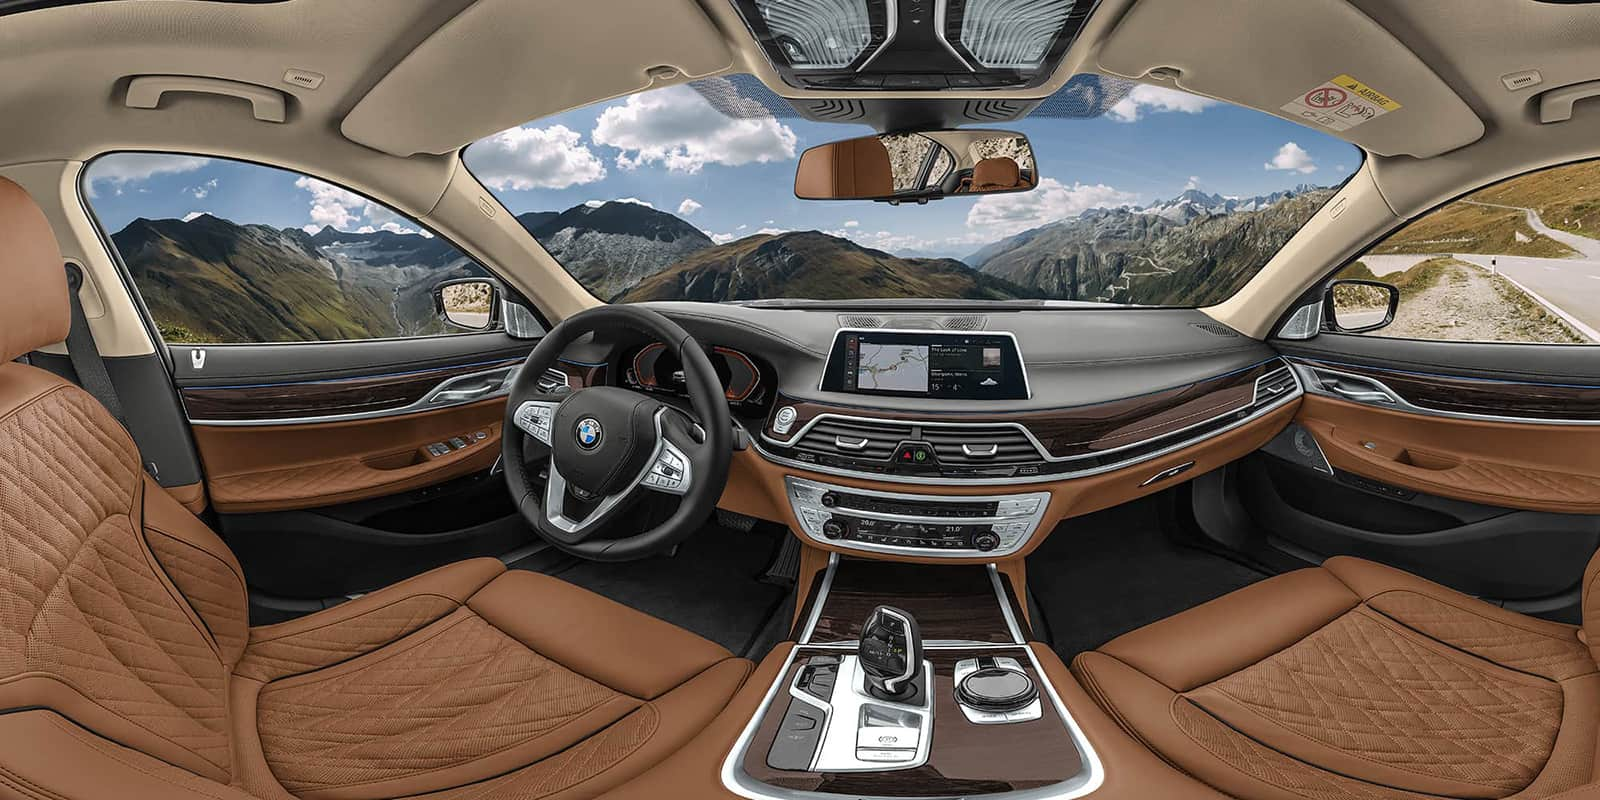 Bmw 2019 7 Series Interior View 360 Vr Panorama Ivrpa